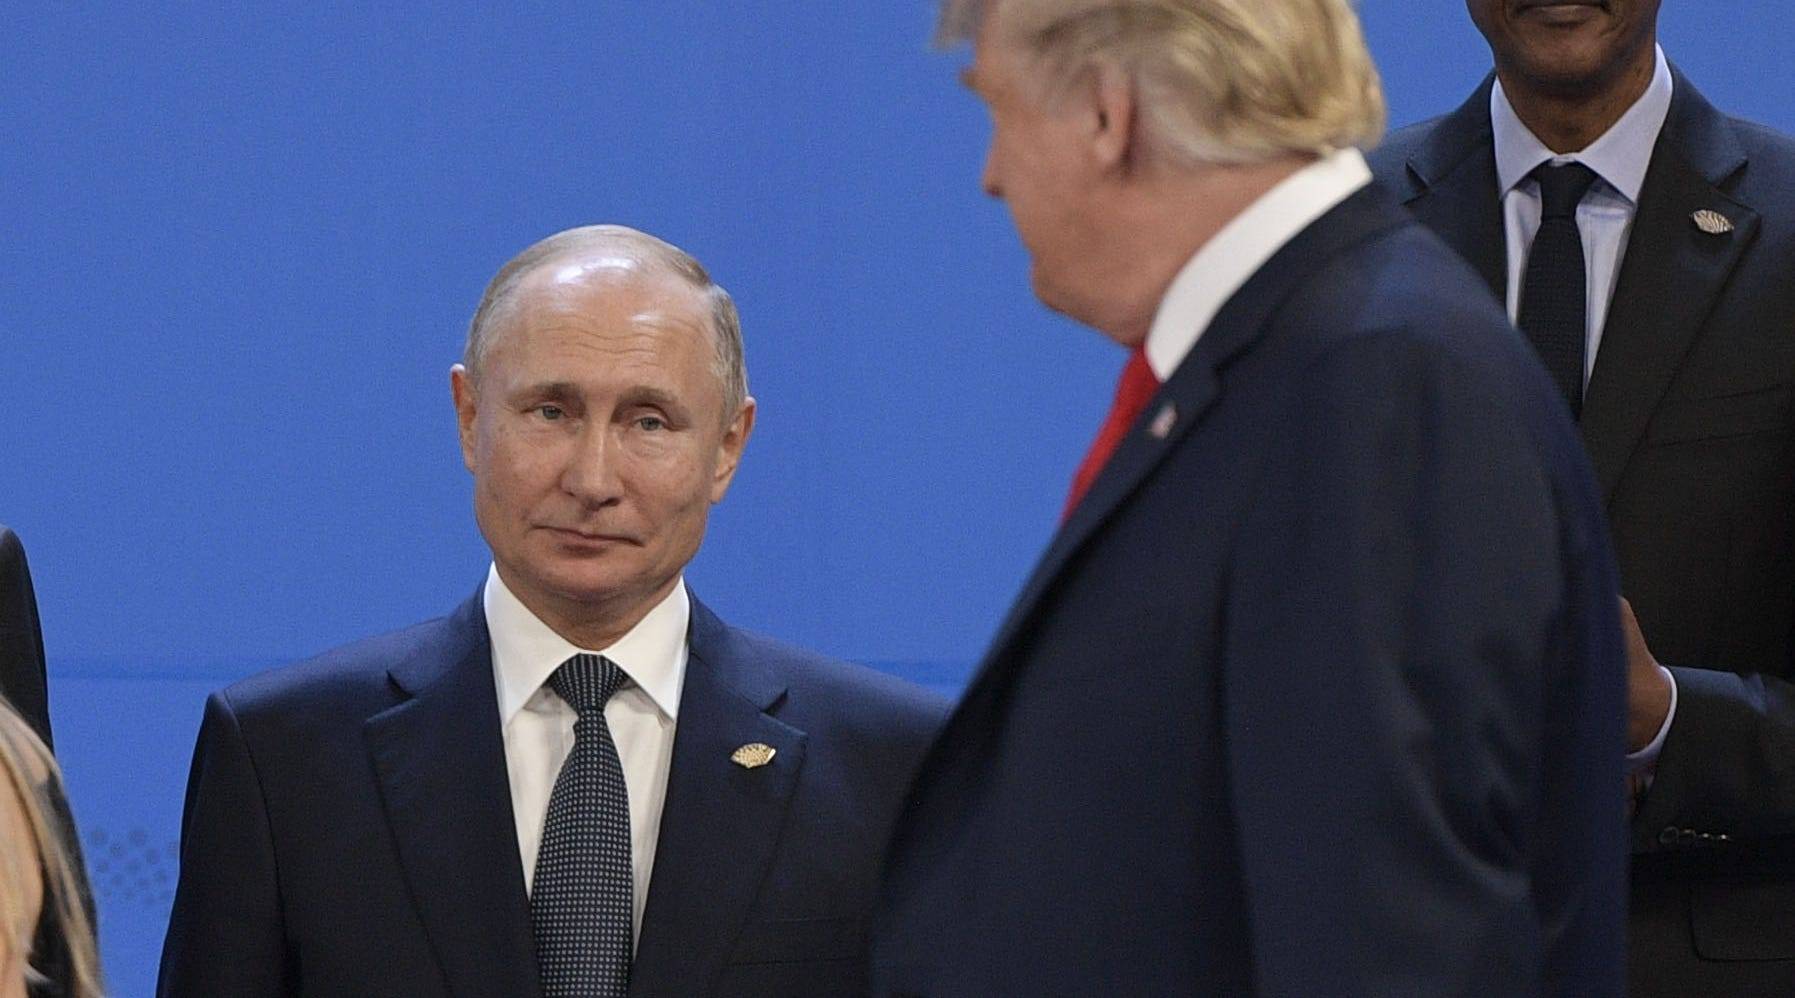 President Donald Trump, looks at Russia's President Vladimir Putin as they prepare for a group photo, during the G-20 Leaders' Summit in Buenos Aires, on Nov. 30, 2018.